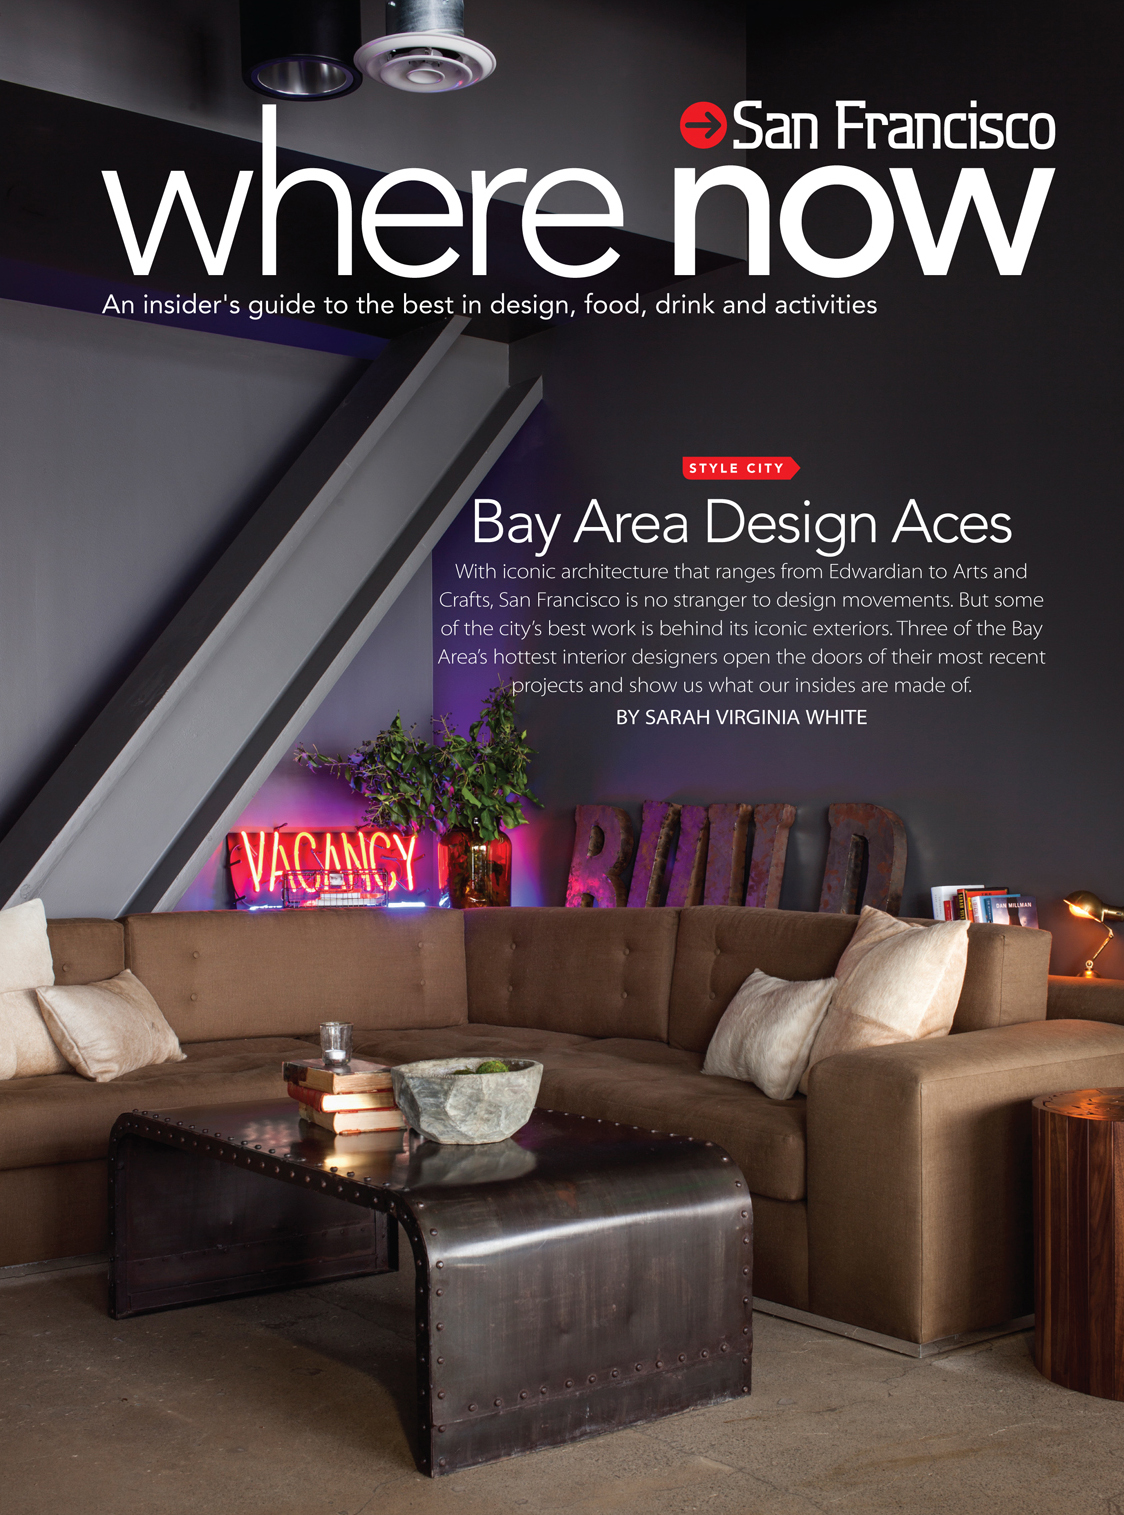 Where Bay Area Design Aces As Seen in Where Magazine: Our SOMA Loft